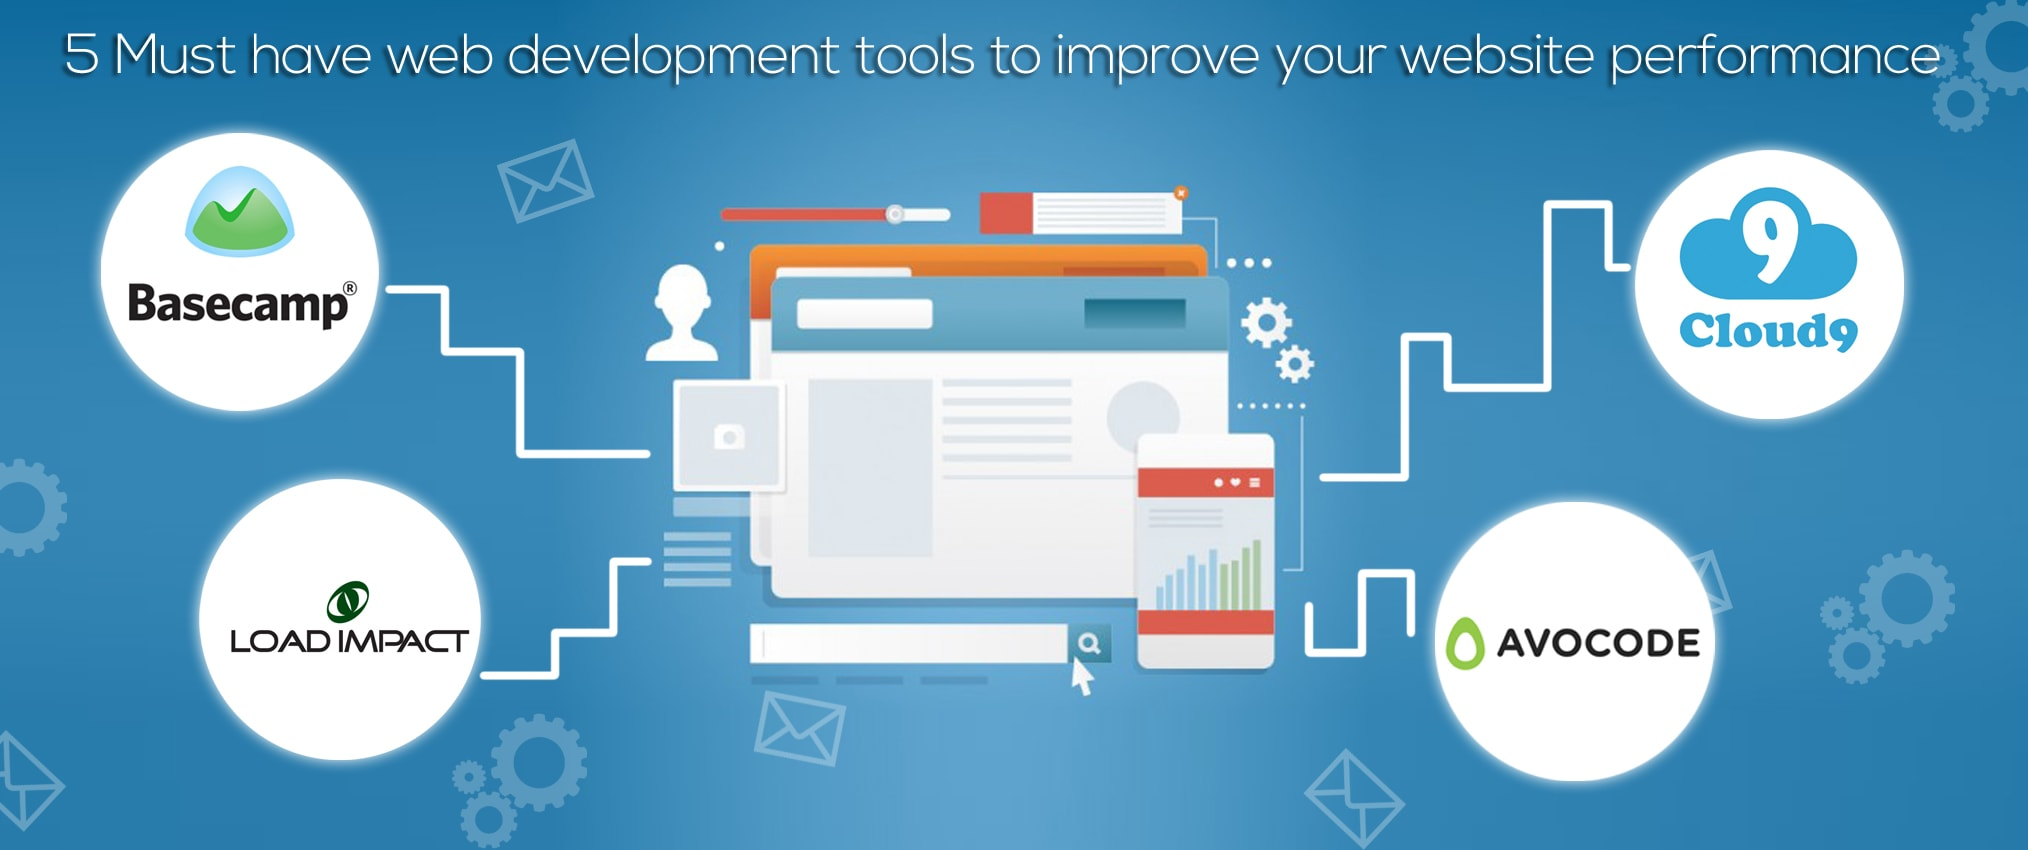 5-Must-have-web-development-tools-to-improve-your-website-performance-min